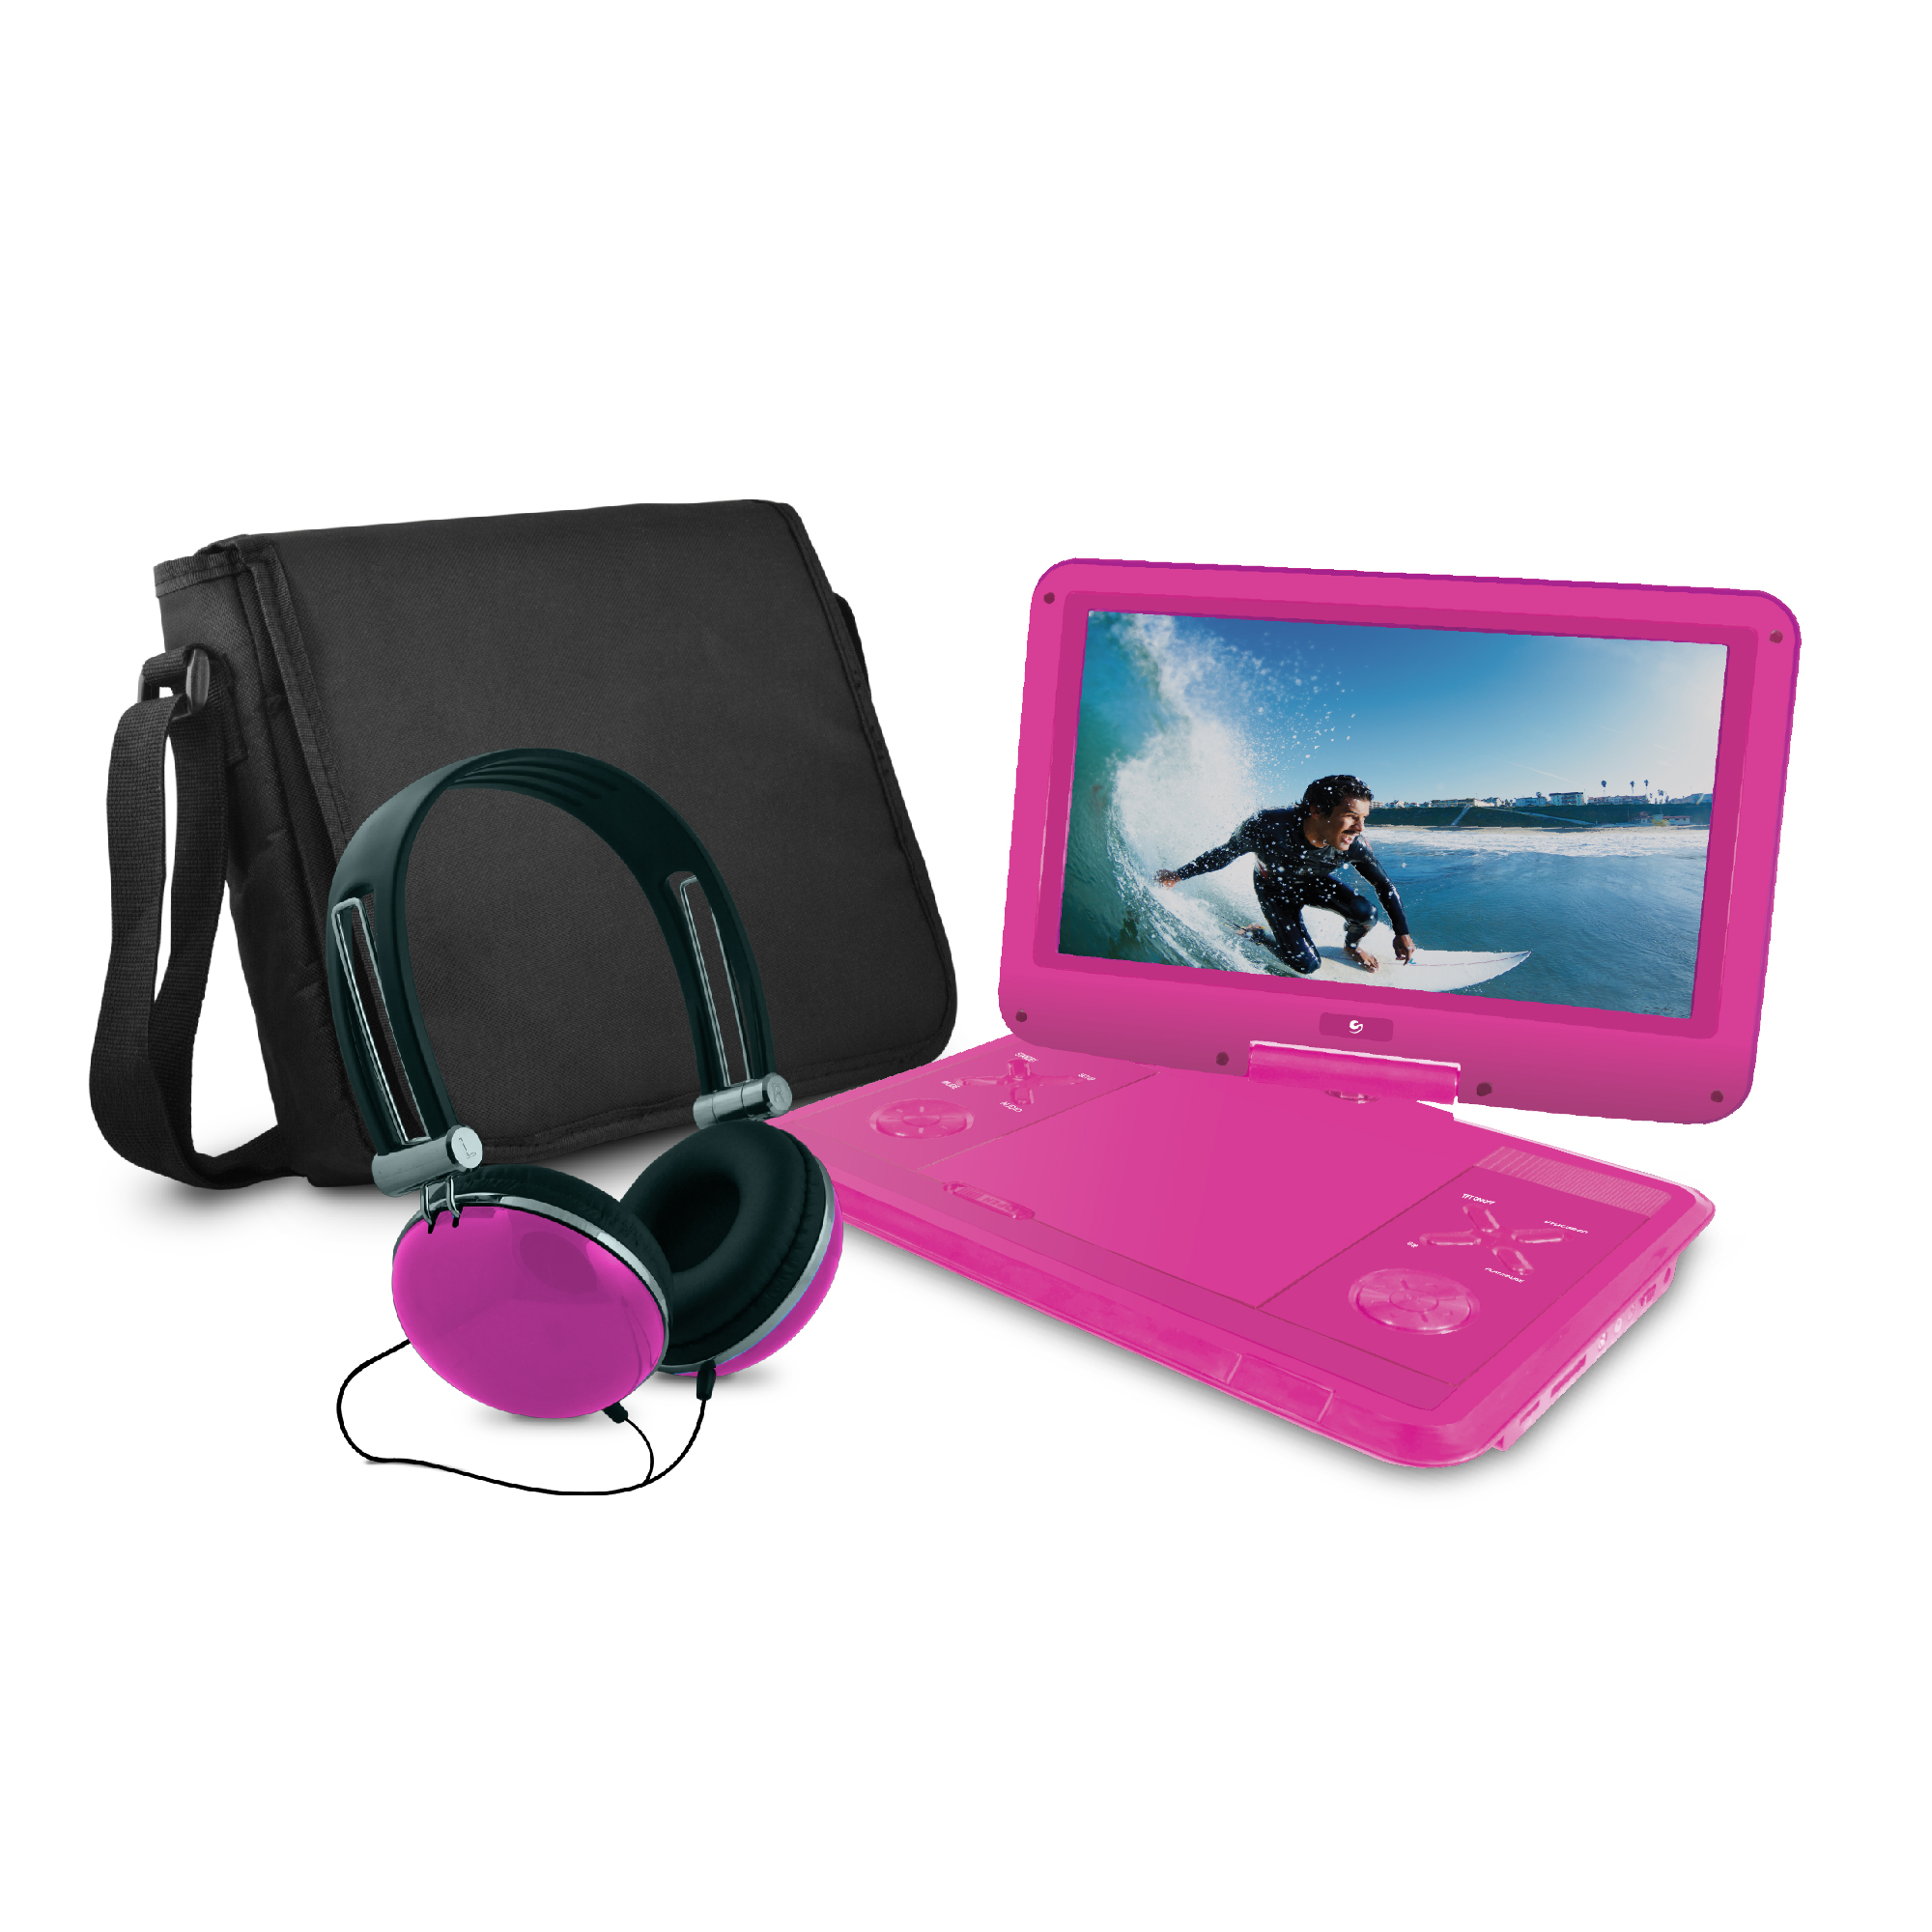 """Ematic 12.1"""" Portable DVD Player with Travel Bag and Headphones Bundle - Black"""